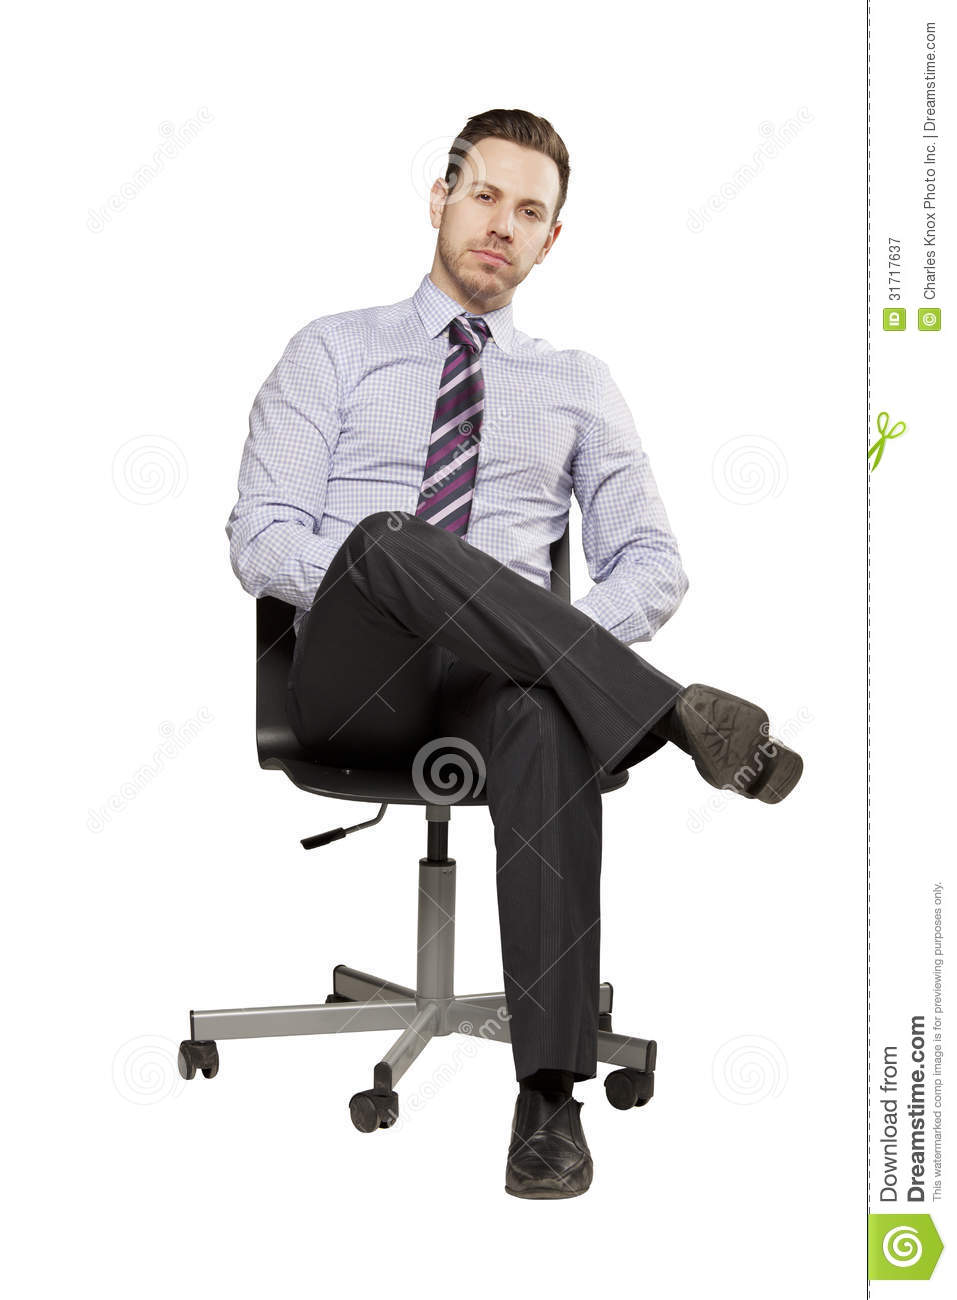 Inviting Business Man Sitting On Chair Stock Image - Image ...